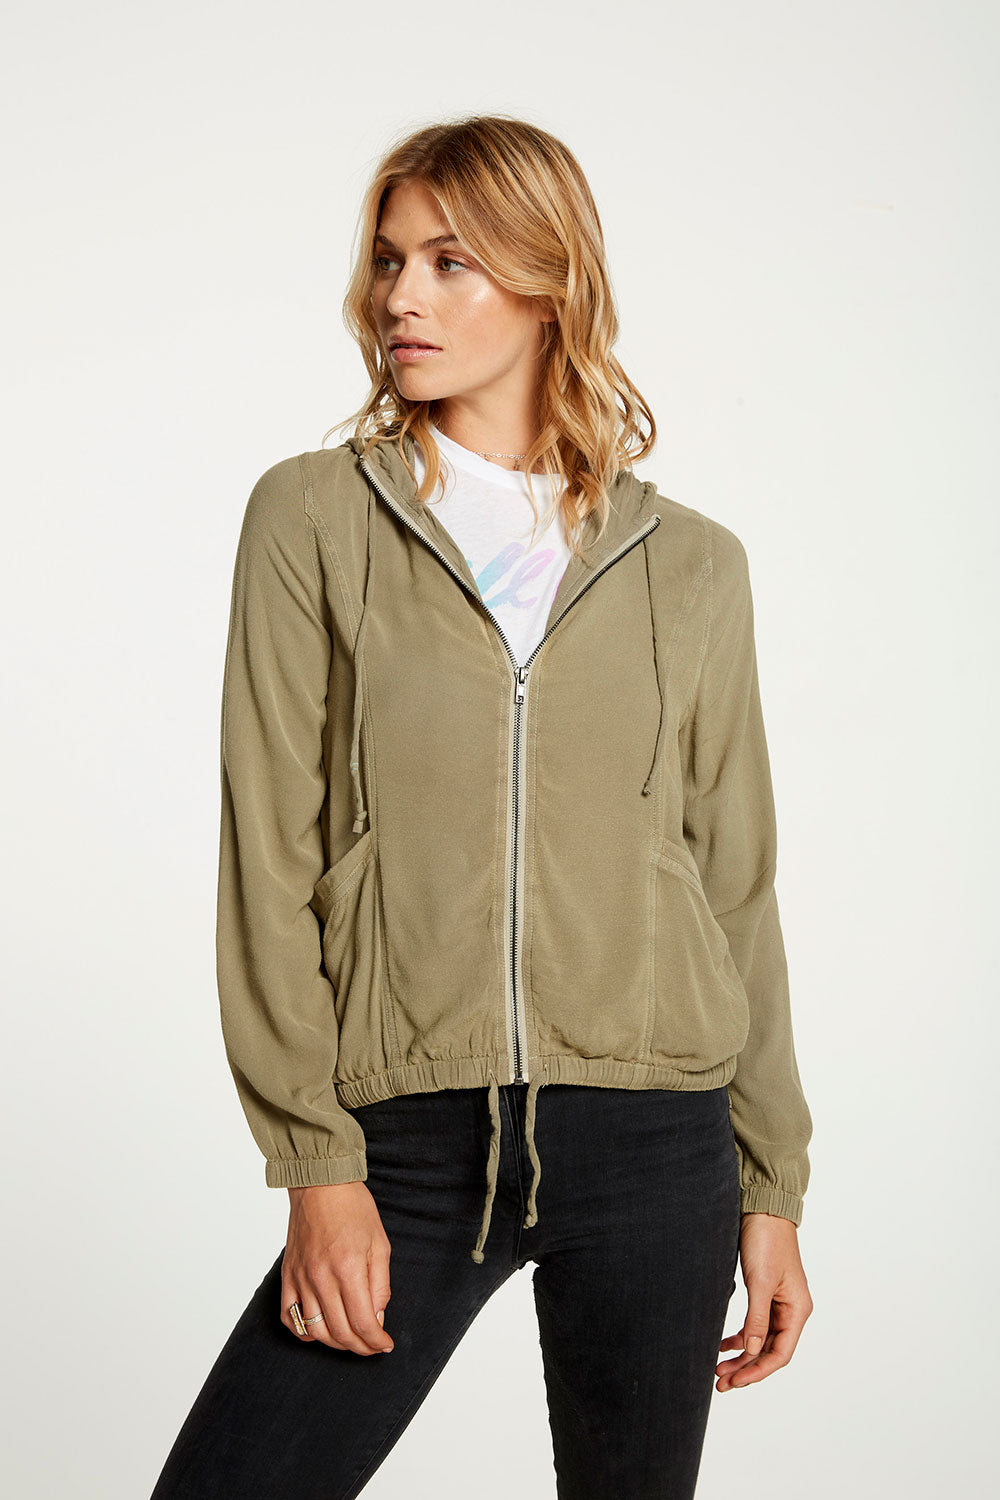 Heirloom Wovens Long Sleeve Hoodie Windbreaker WOMENS chaserbrand4.myshopify.com